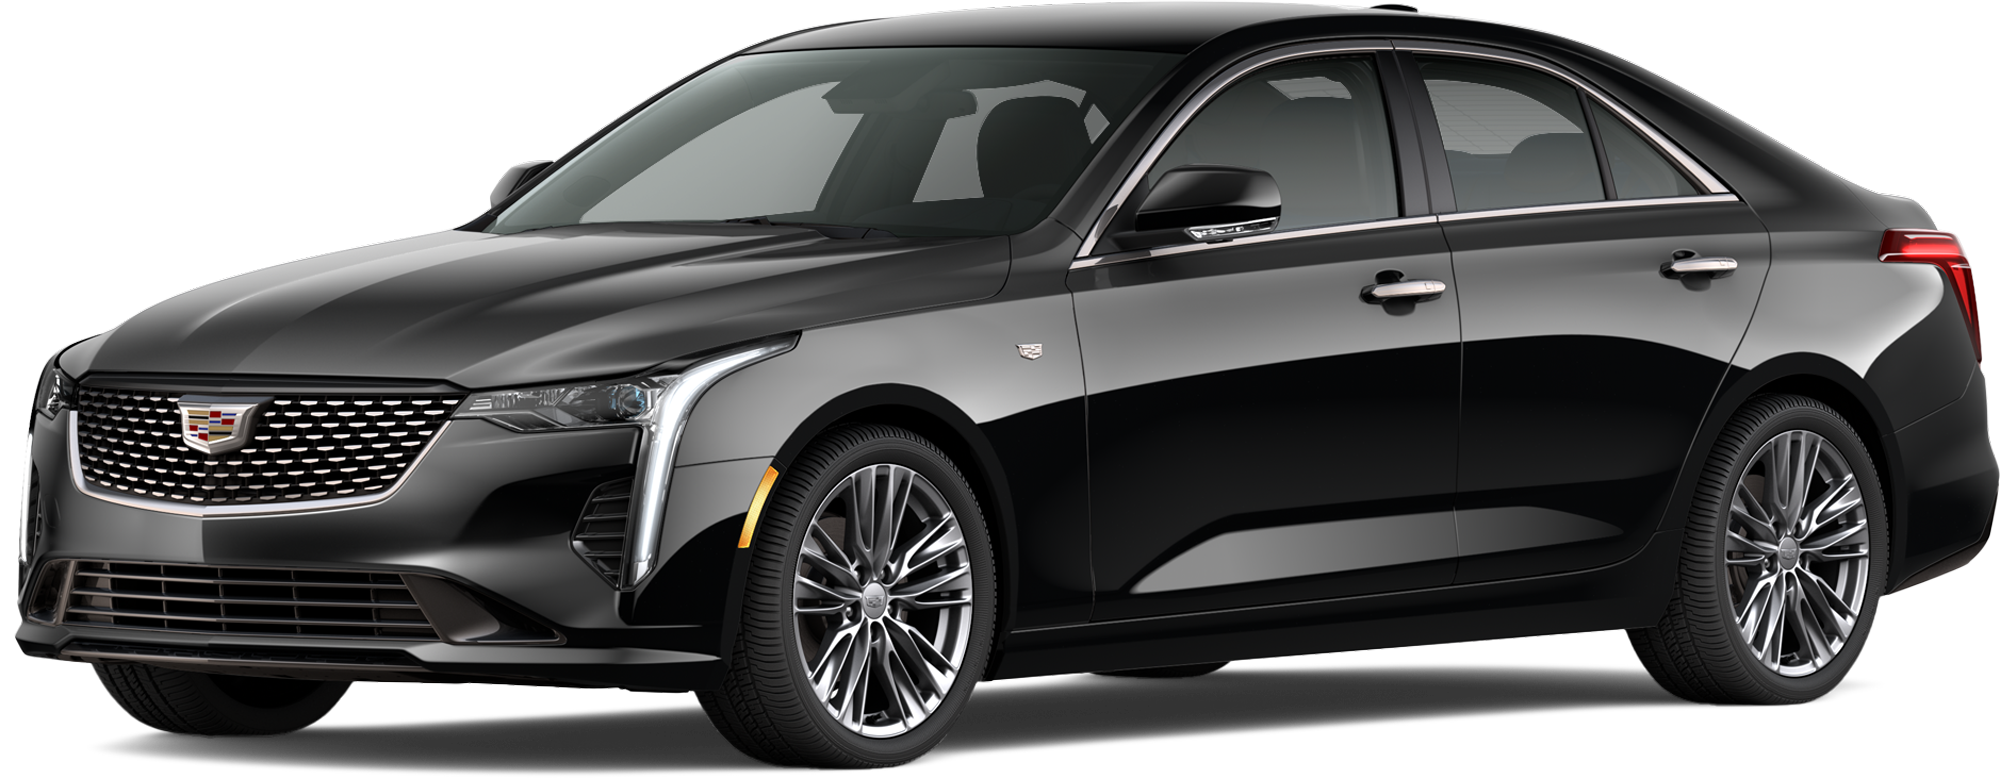 2020 CADILLAC CT4 Sedan Premium Luxury